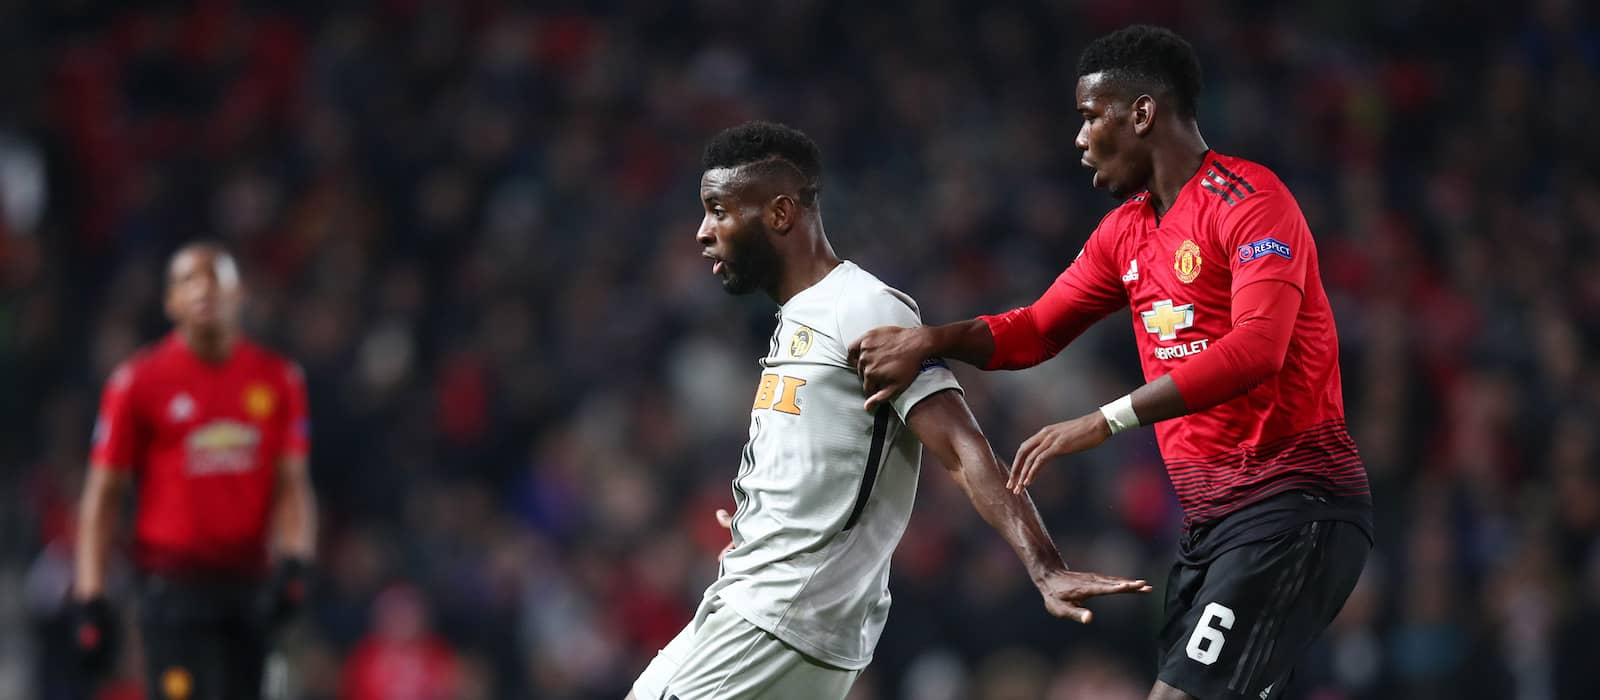 Manchester United fans turn on Paul Pogba after performance vs Southampton